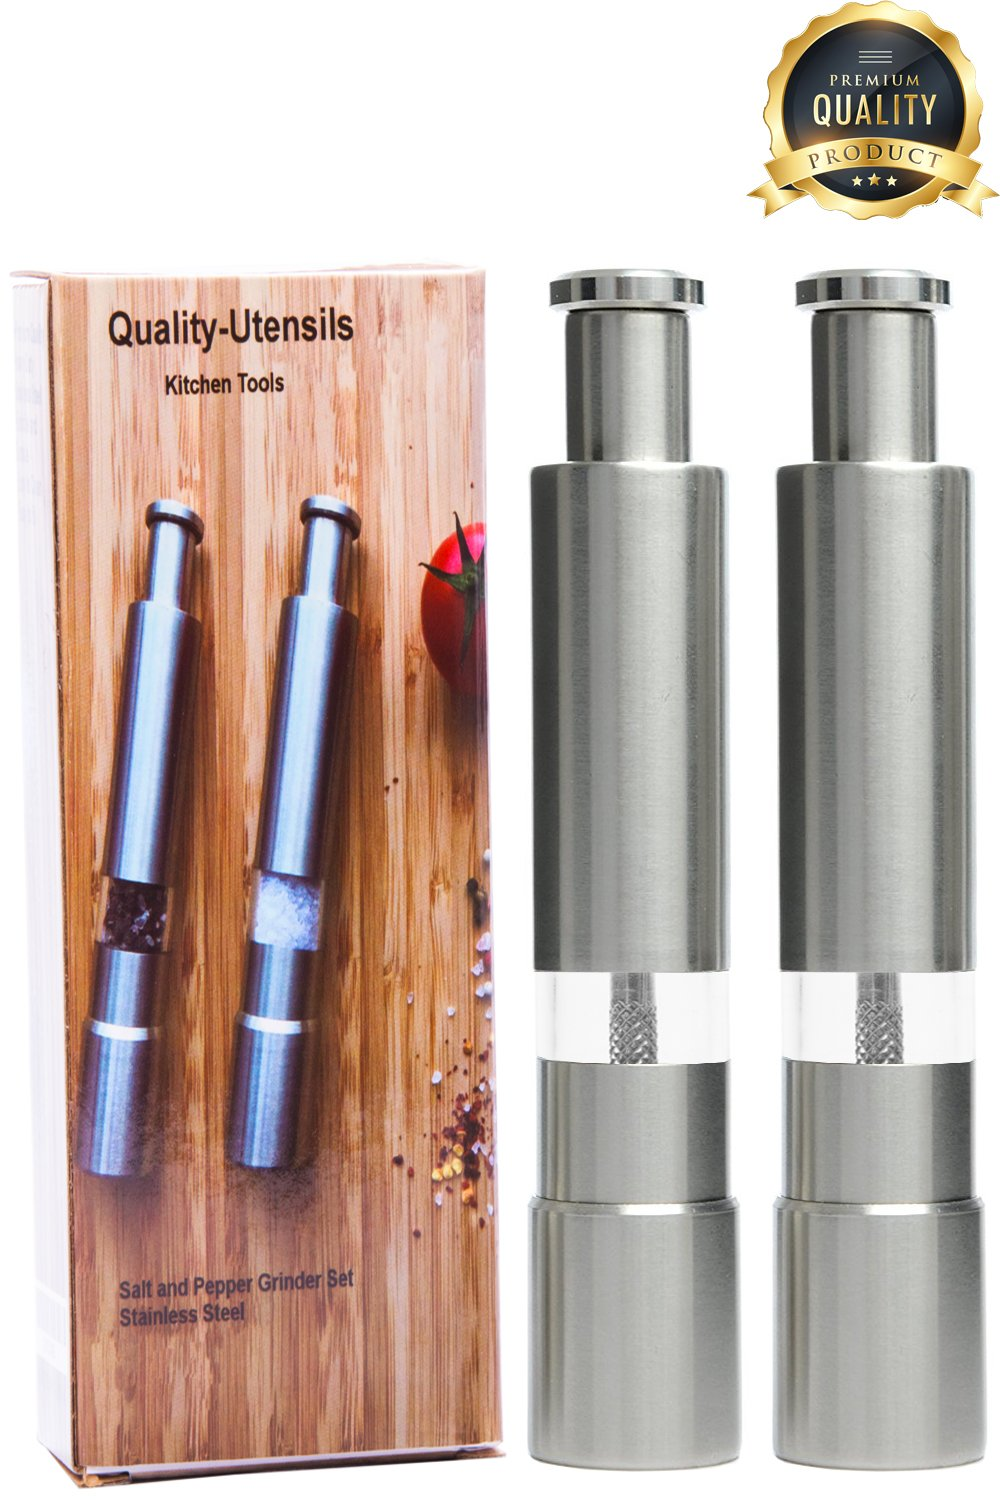 Details About Salt And Pepper Grinder Set Modern Stainless Steel Pump And Grind For